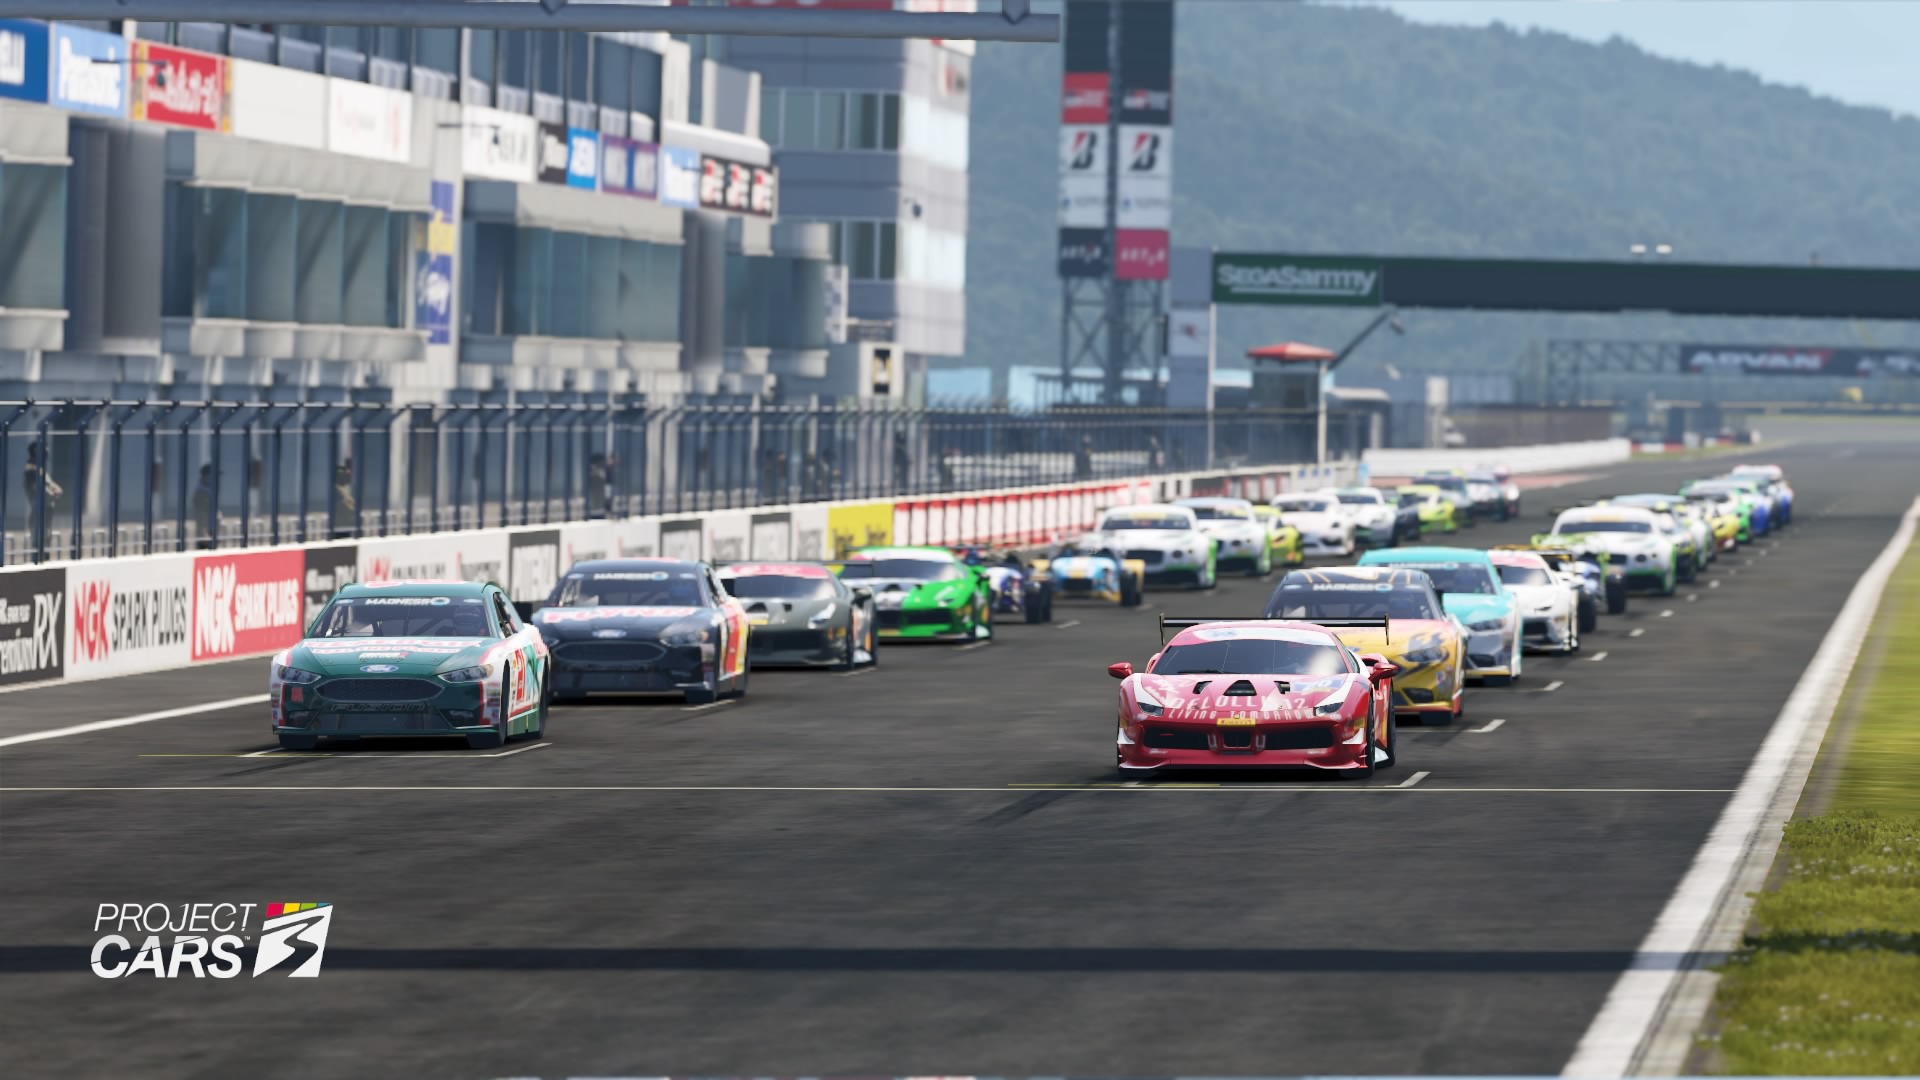 Project Cars 3 20200822112946